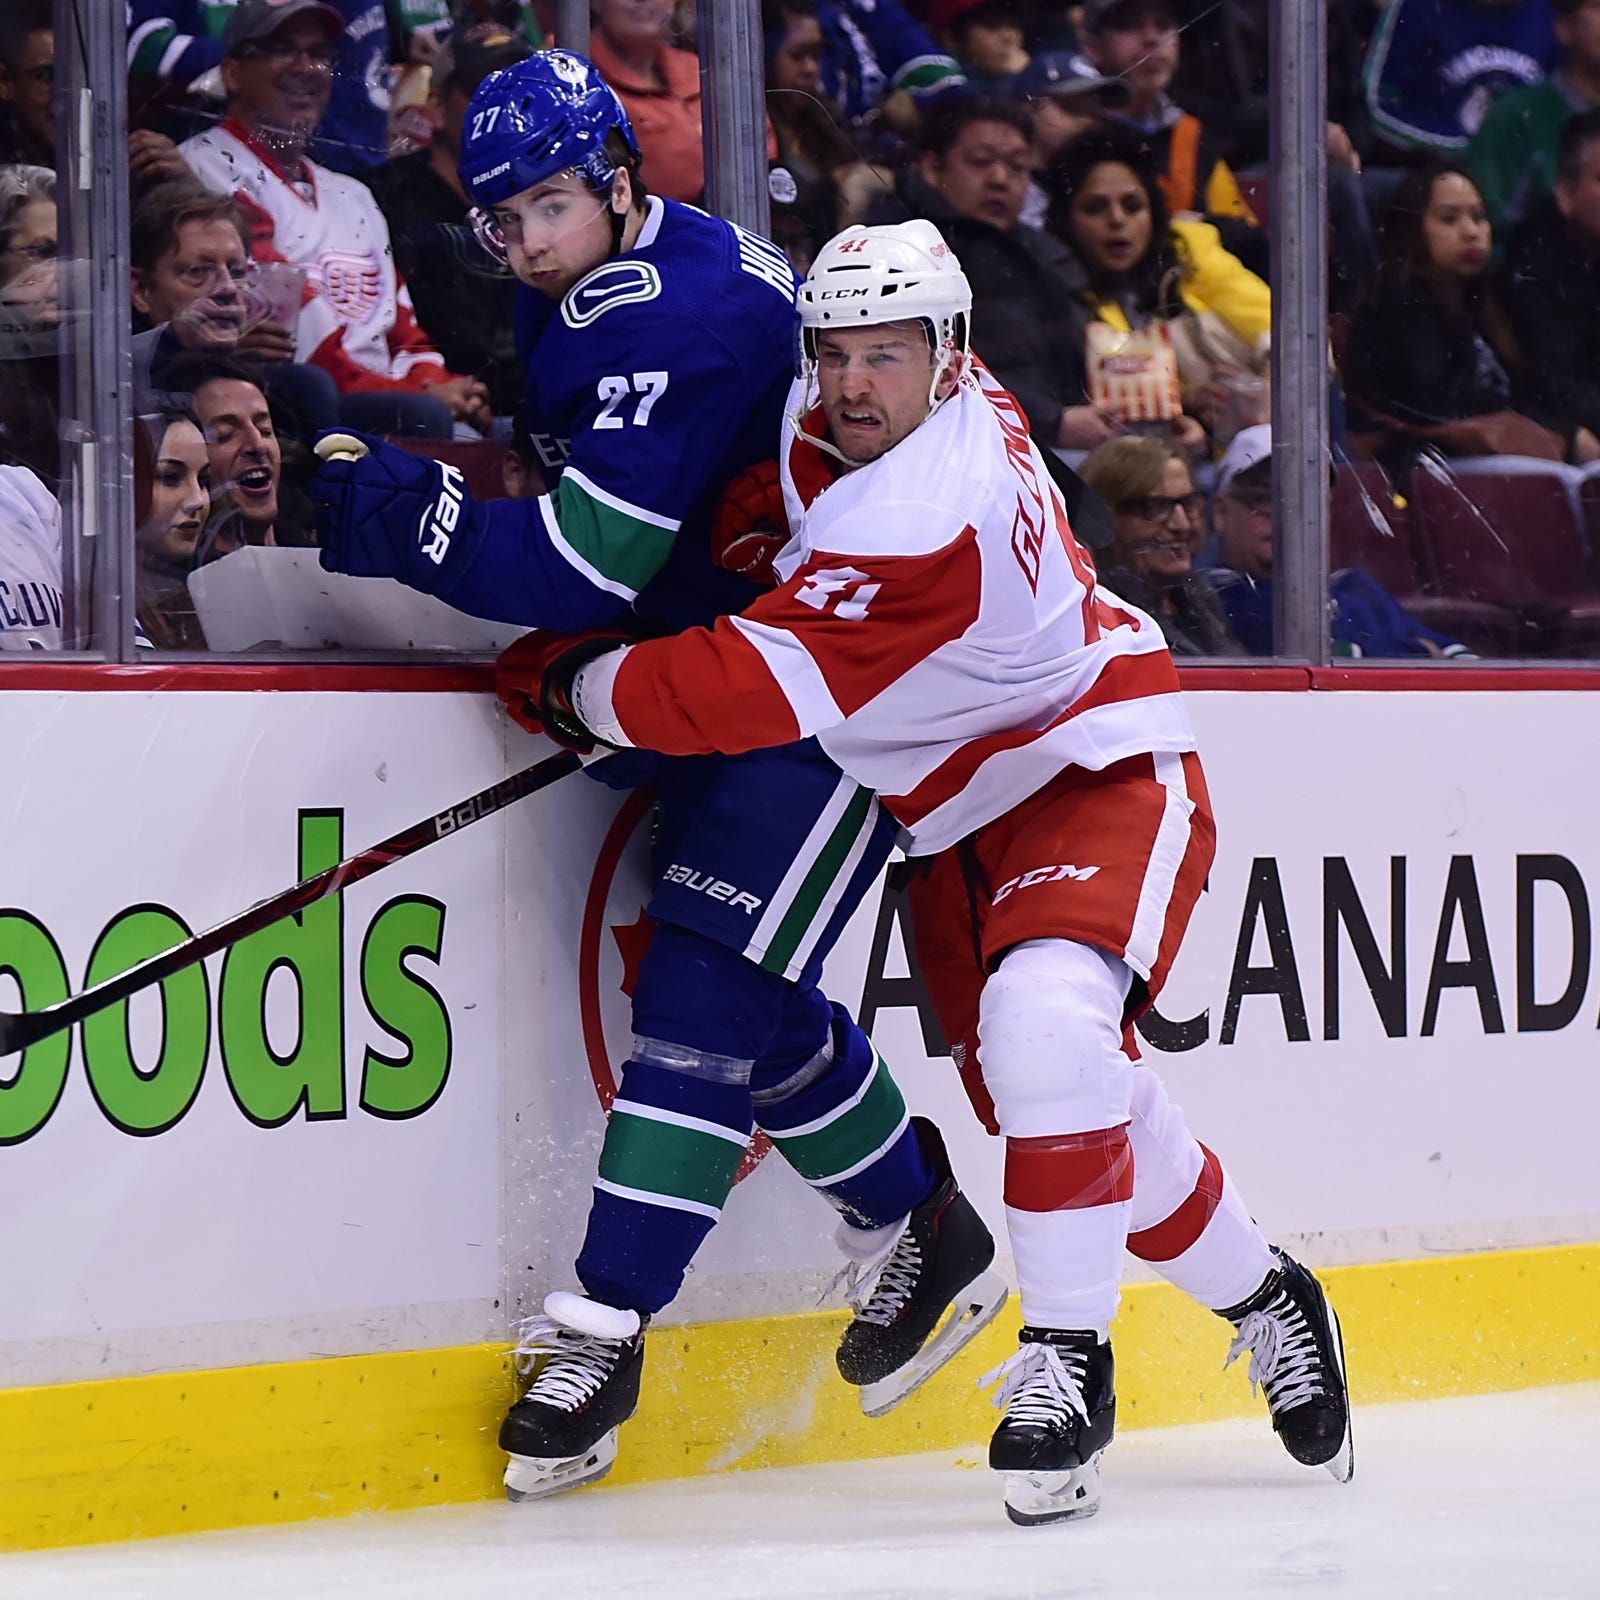 Detroit Red Wings fizzle late - again - lose at Vancouver Canucks, 3-2